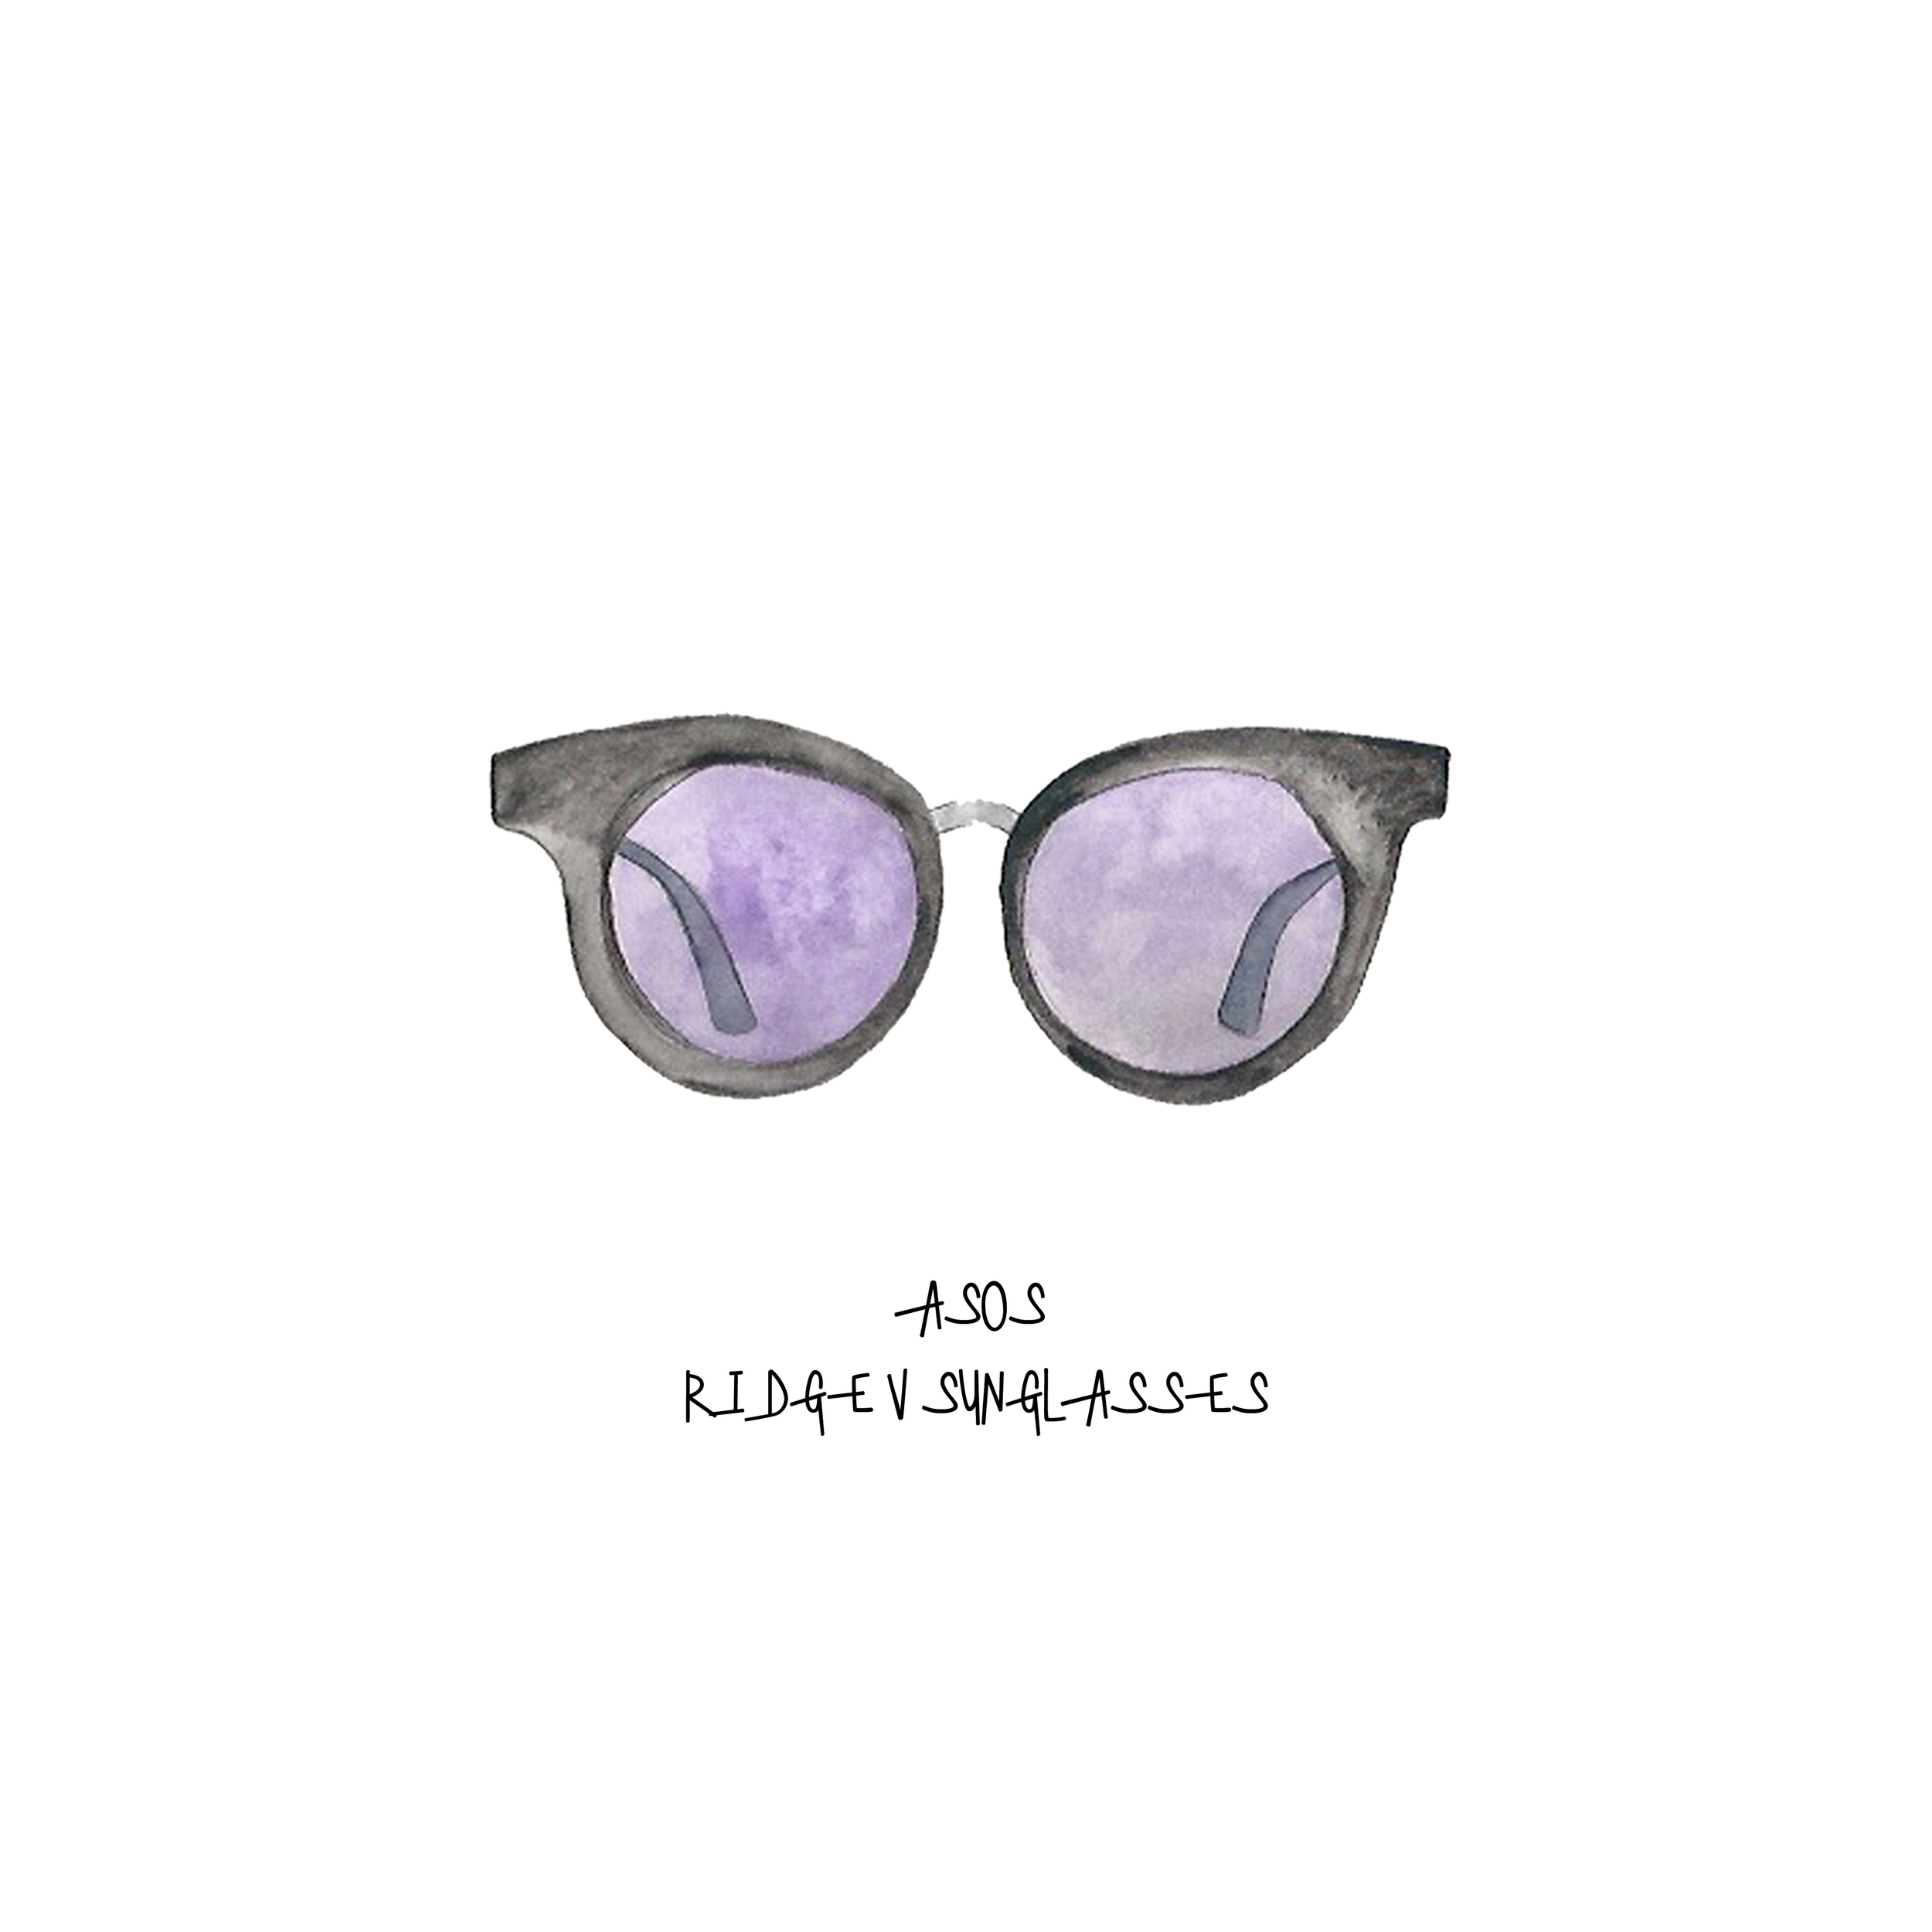 ASOS Ridge V sunglasses.jpg